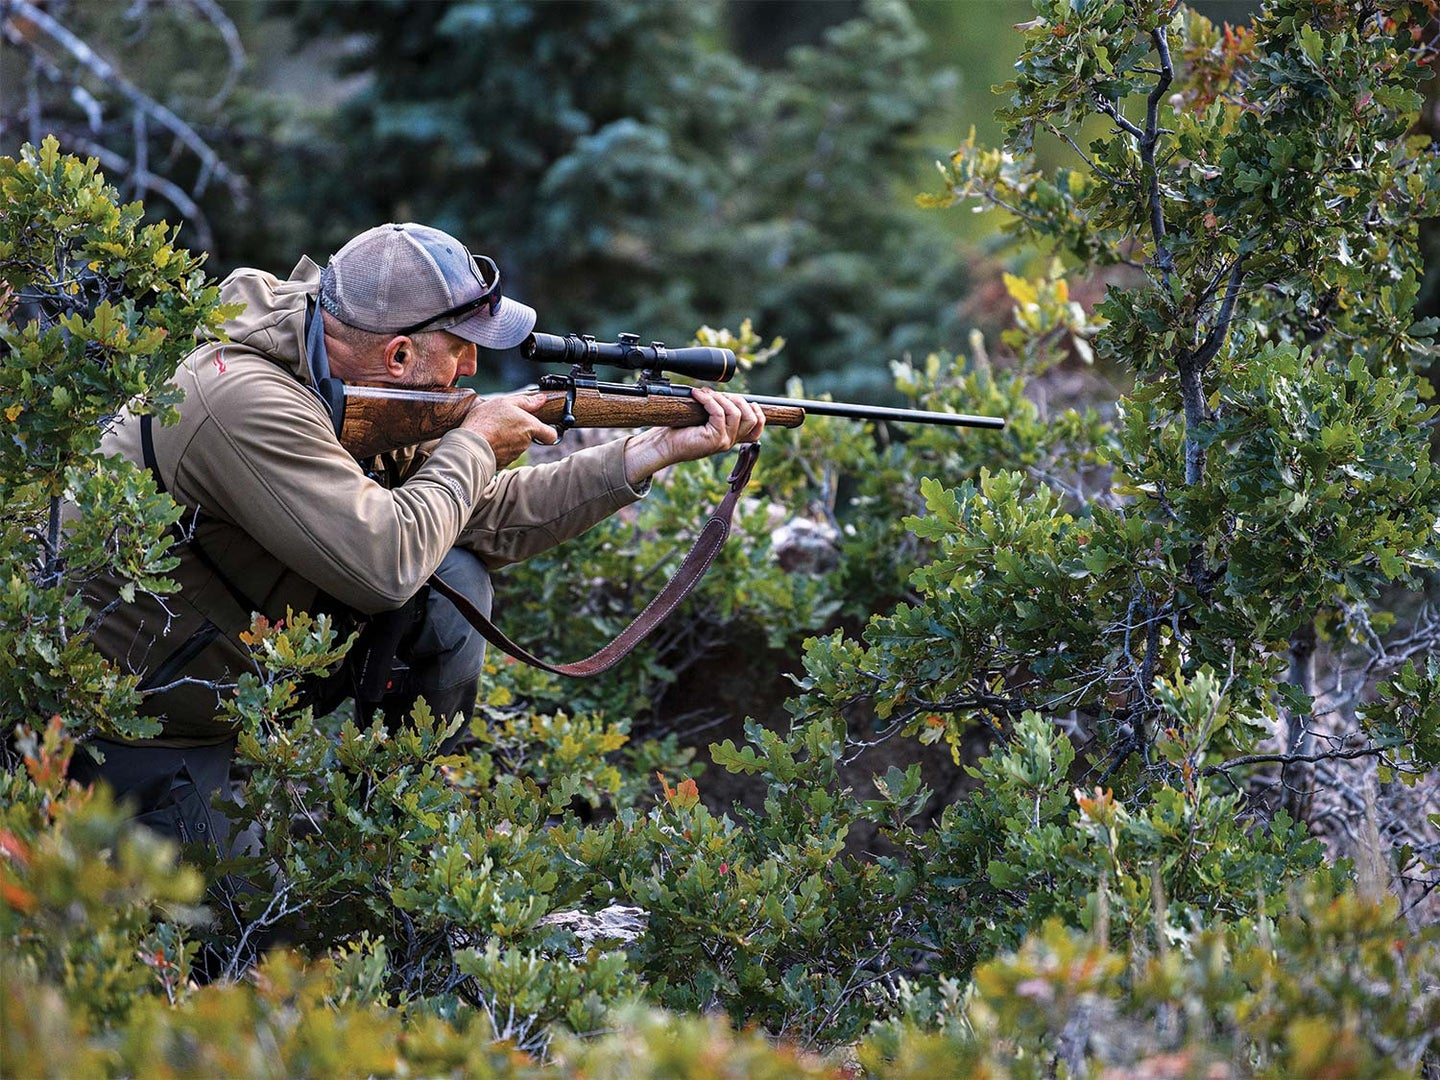 A hunter stands amongst brush and cover while looking through a riflescope and holding a rifle against his shoulder, ready to fire.